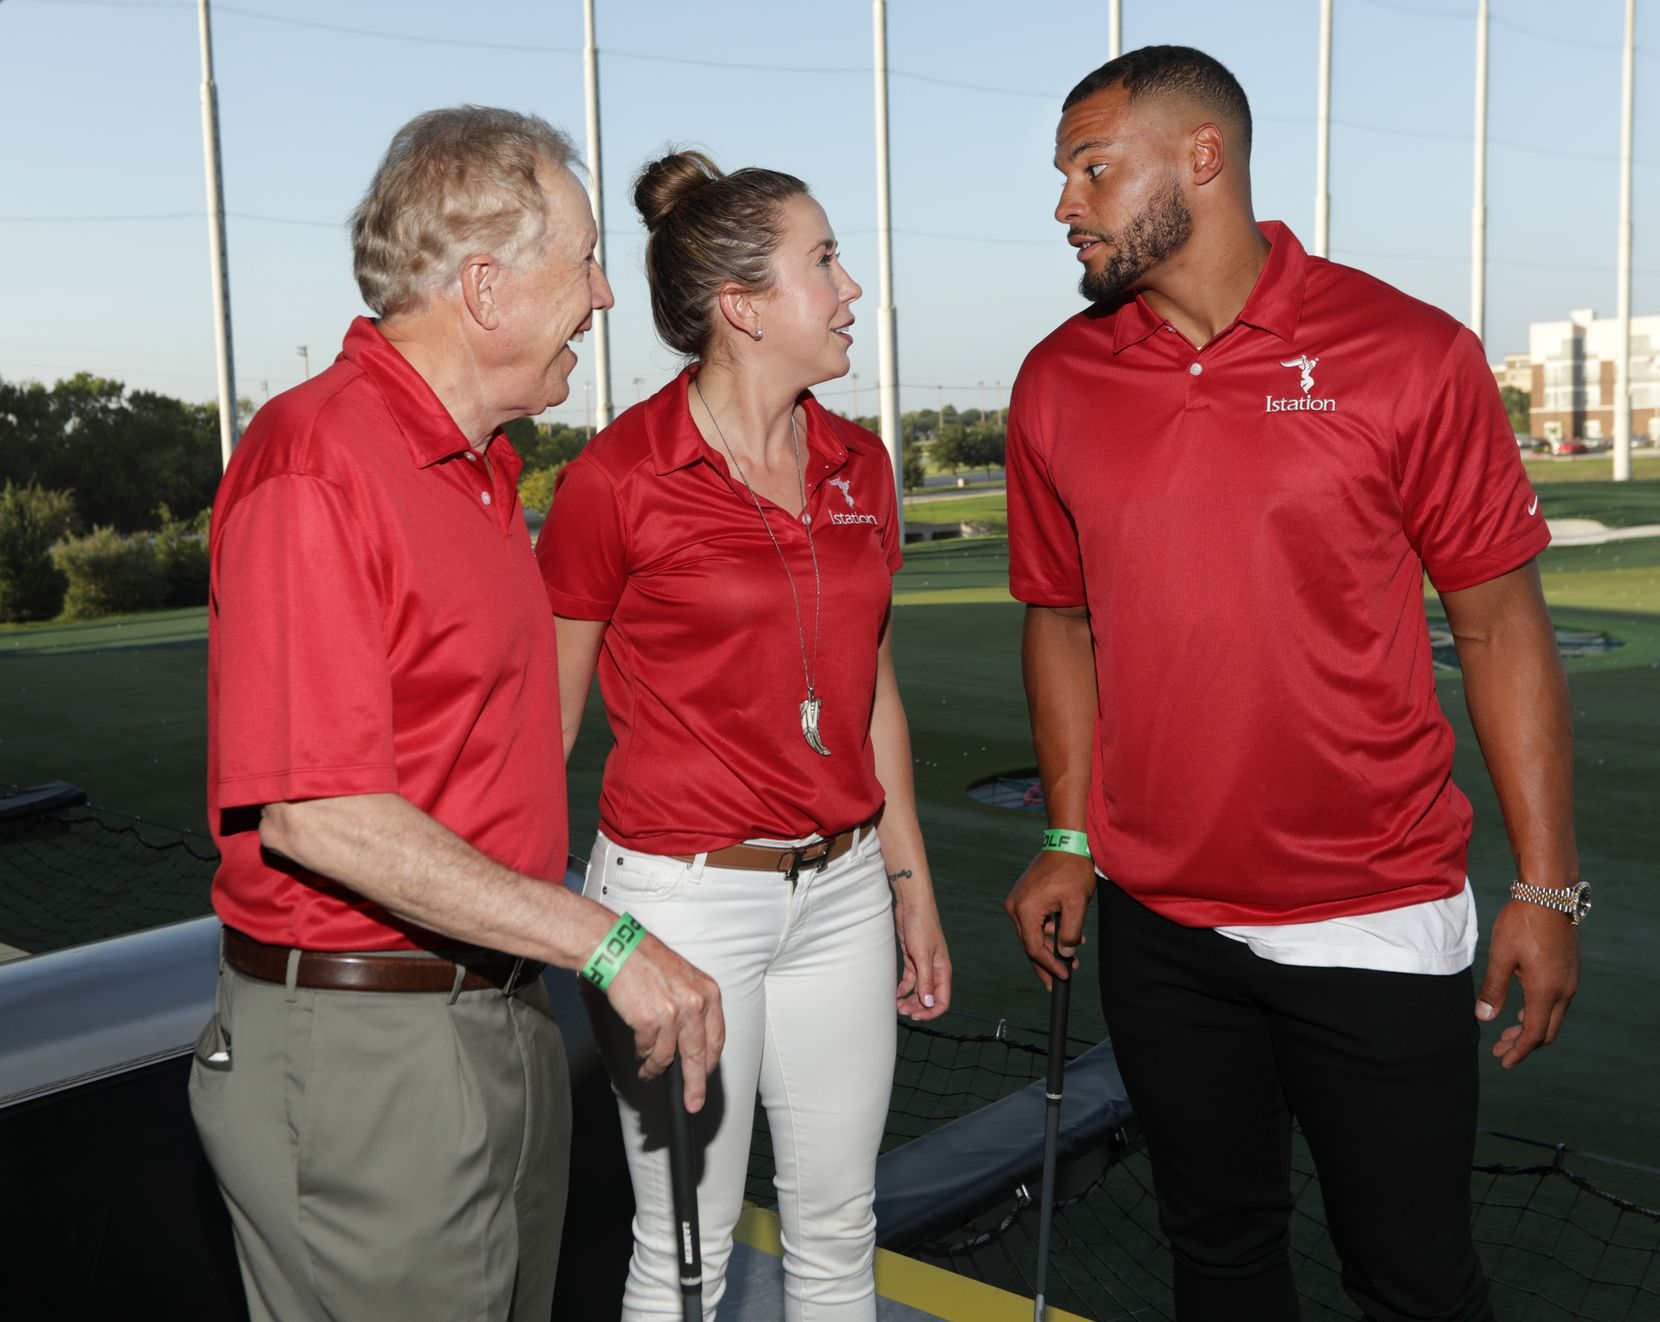 Richard Collins, left, Genevieve Collins, and Dak Prescott talk during the Tackle Tomorrow Today charity golf tournament opening dinner at Top Golf in The Colony on Aug. 27, 2018. (Jason Janik/Special Contributor)